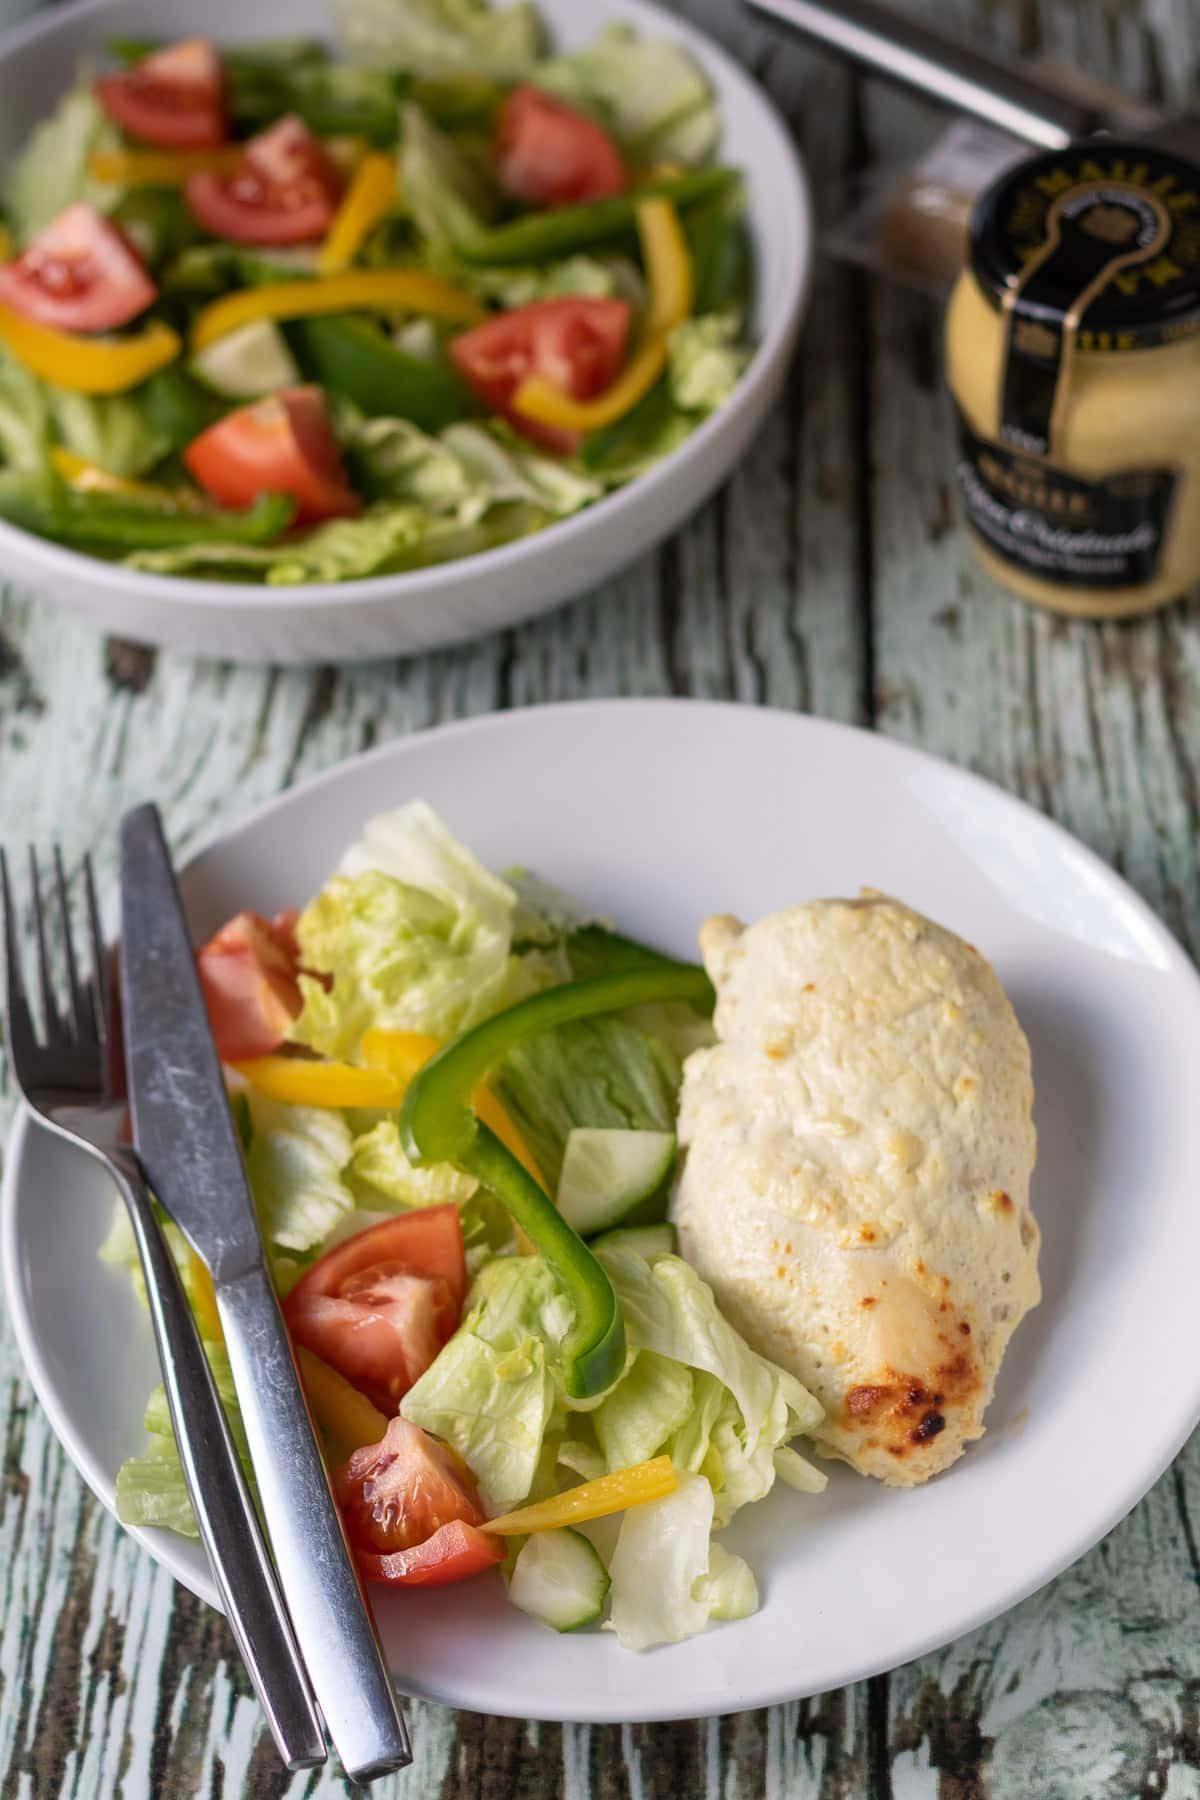 Oven baked mustard yogurt chicken served on a plate with salad and a knife and fork. Jar of mustard and bowl of salad in the background.